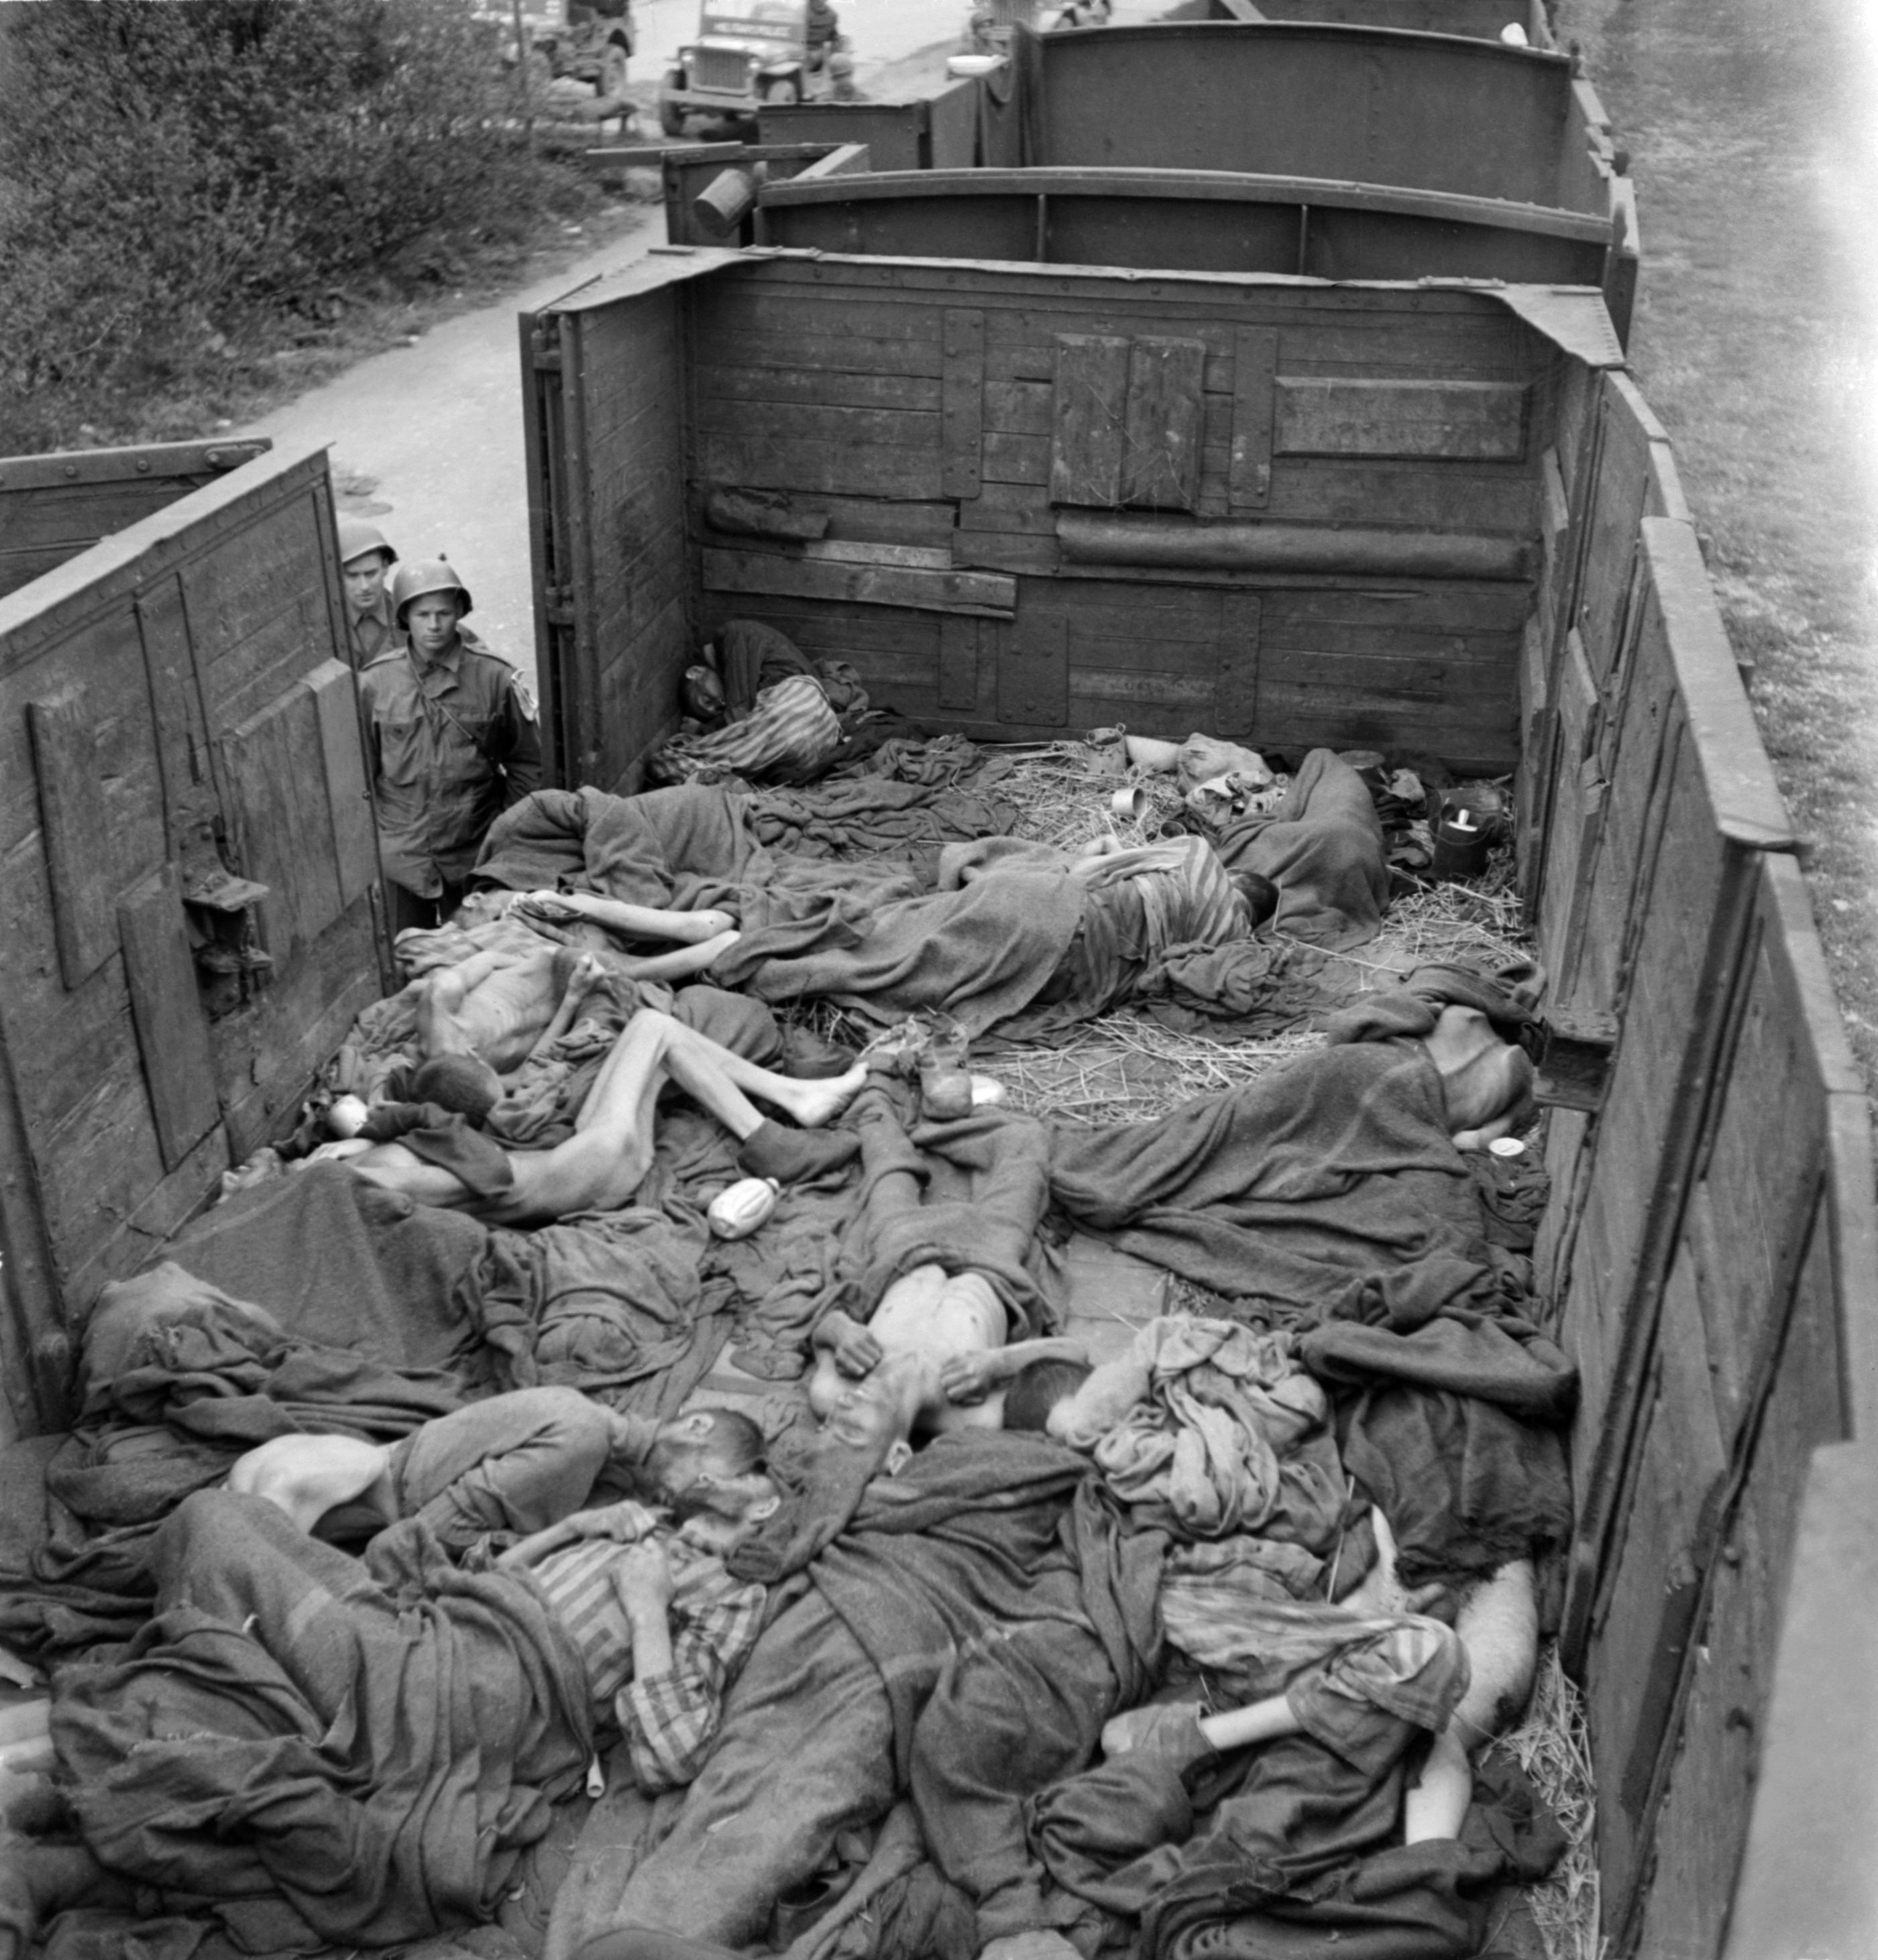 US soldiers look at the pile of prisoner's dead bodies in a train near Dachau concentration camp in late April or early May 1945, after the camp was liberated by the US army on April 29, 1945. (Photo by ERIC SCHWAB/AFP/Getty Images)